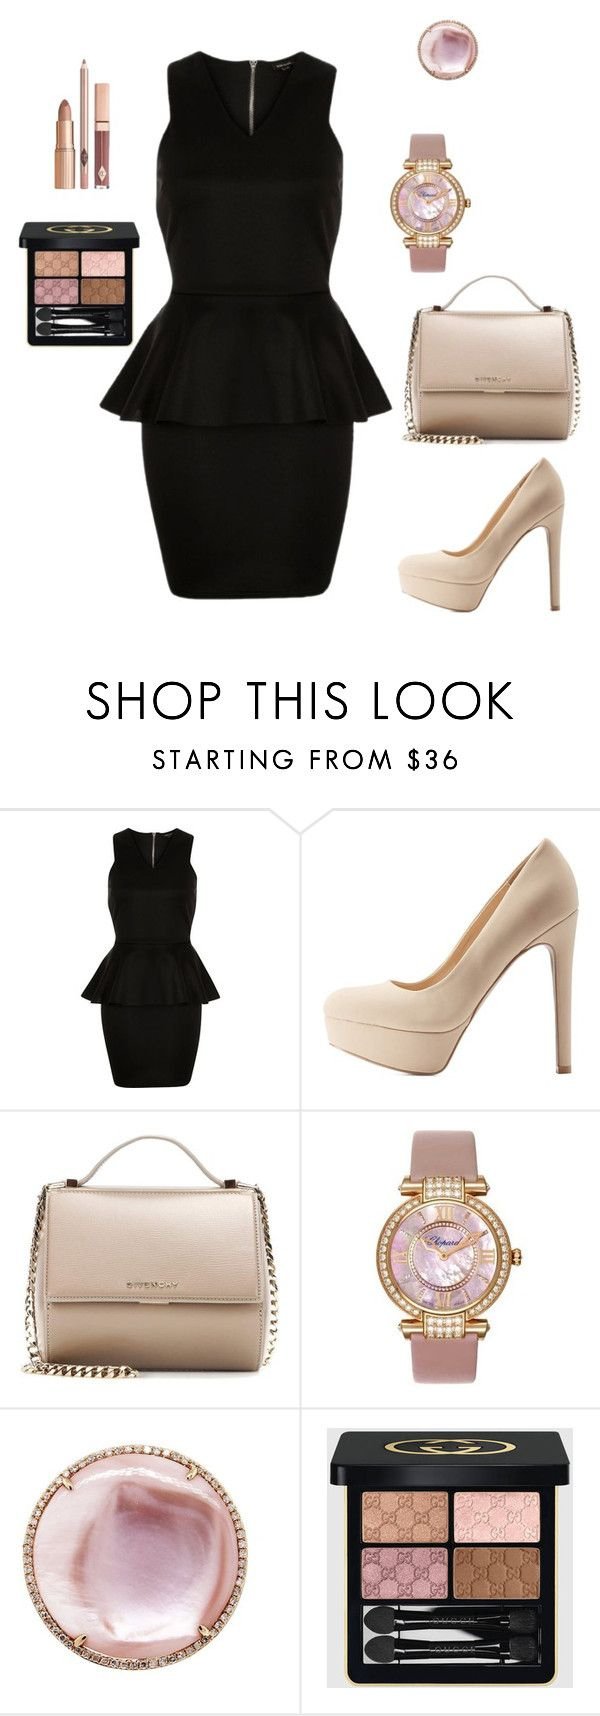 Бизнес кэжуал  Клубника by gala-bell on Polyvore featuring Qupid, Givenchy, Chopard, Gucci, women's clothing, women's fashion, women, female, woman and misses